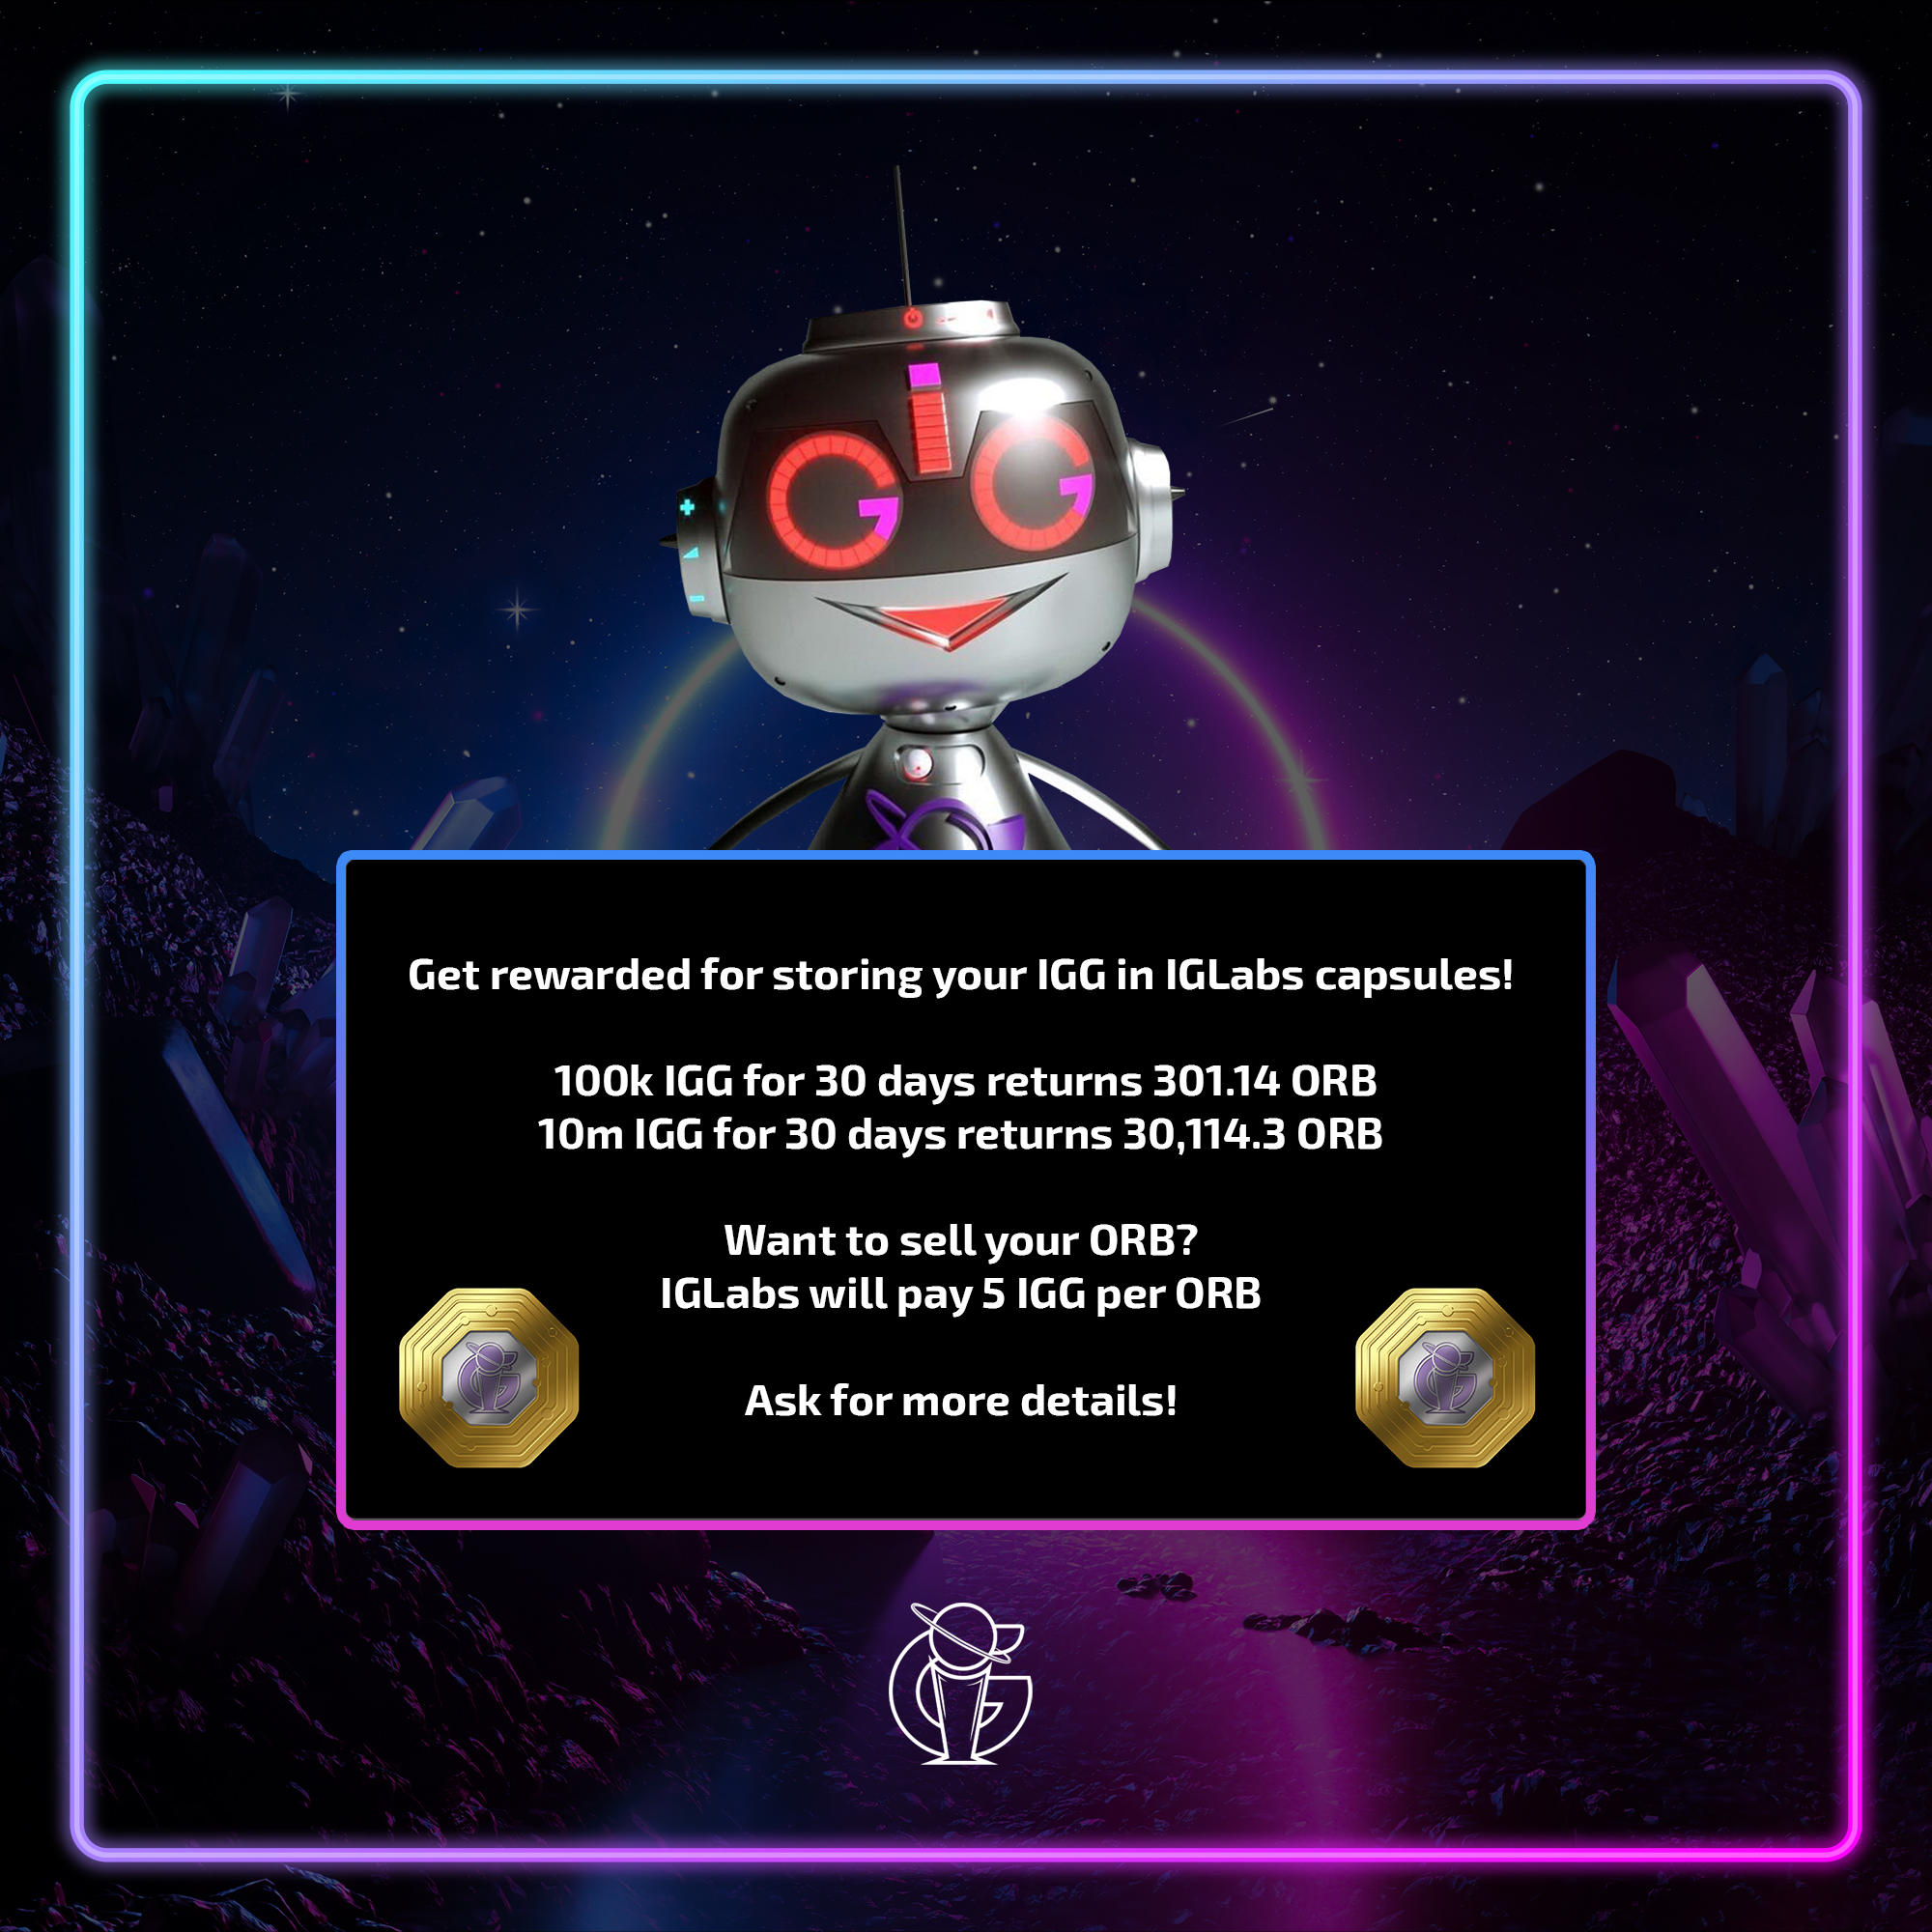 IGLabs will buy your ORB for 5 IGG per ORB token!